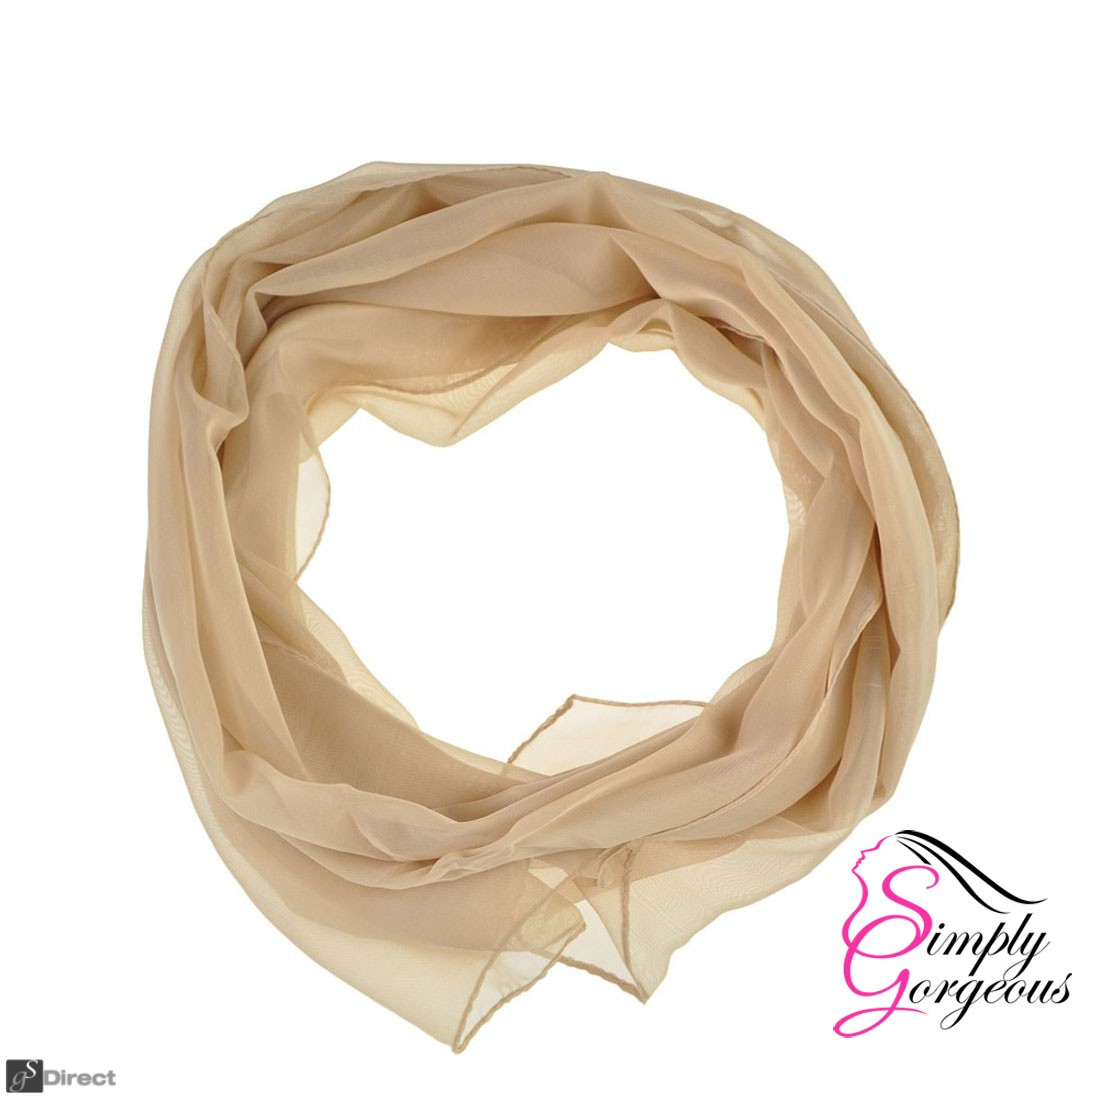 Classic Plain Chiffon Scarf Silk Feel Soft Neck lady Shawl Hijab Scarves - Cream